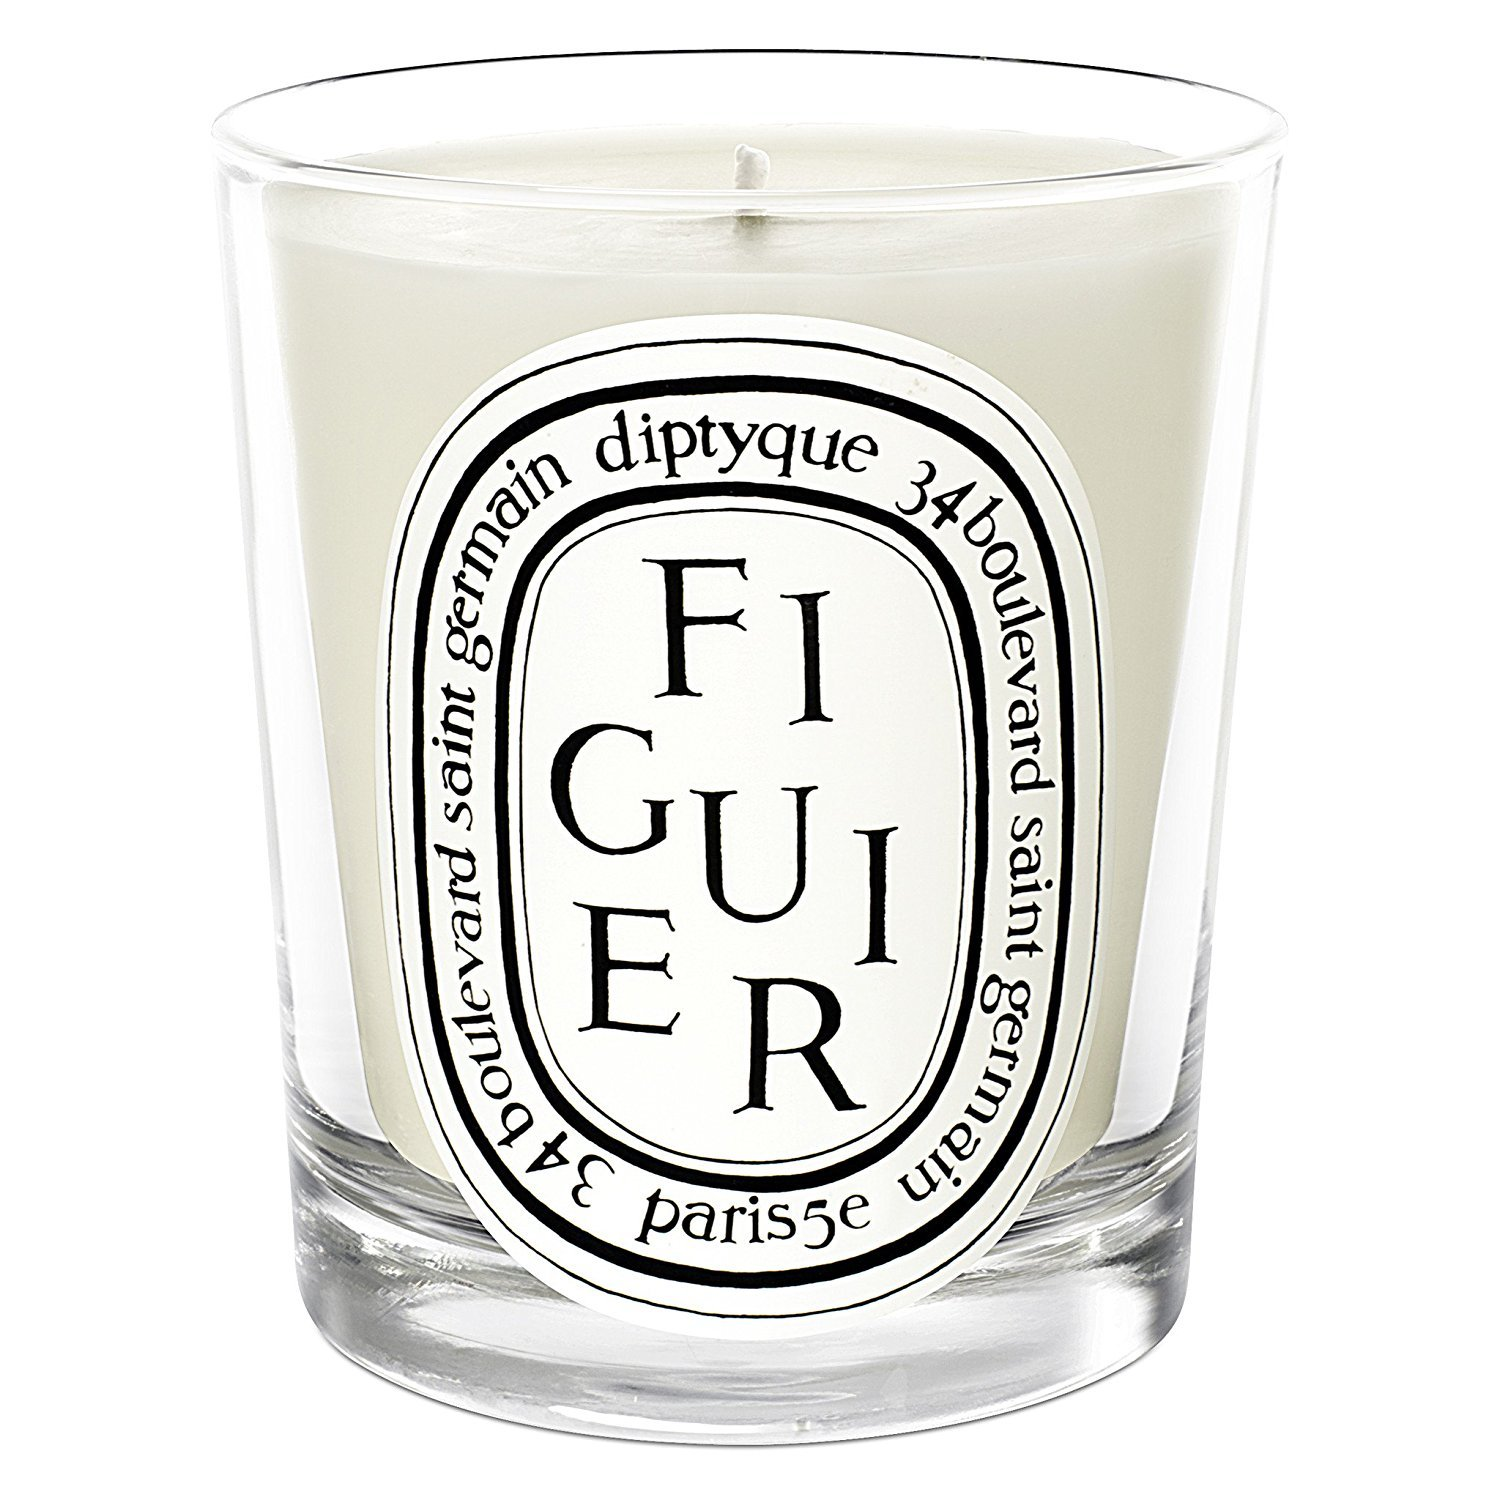 Diptyque - Figuier Candle by Diptyque (Image #1)